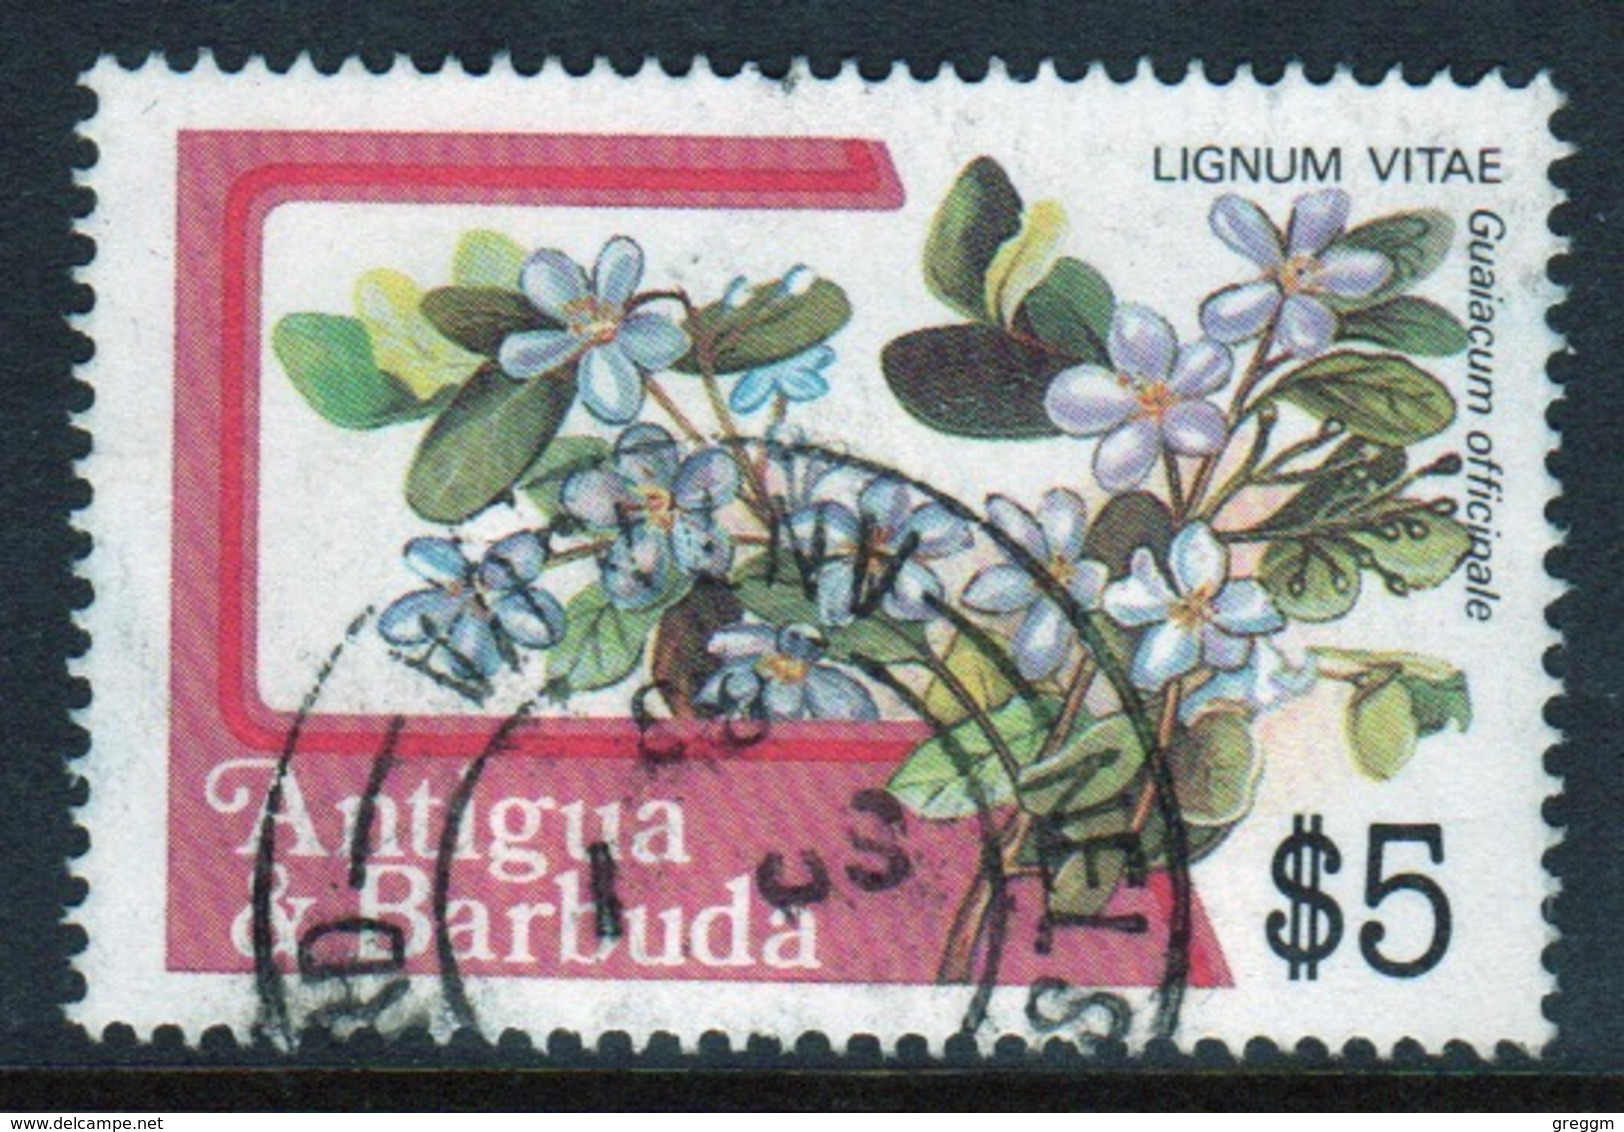 Antigua 1983 Single $5 Stamp From The Definitive Set. - Antigua And Barbuda (1981-...)